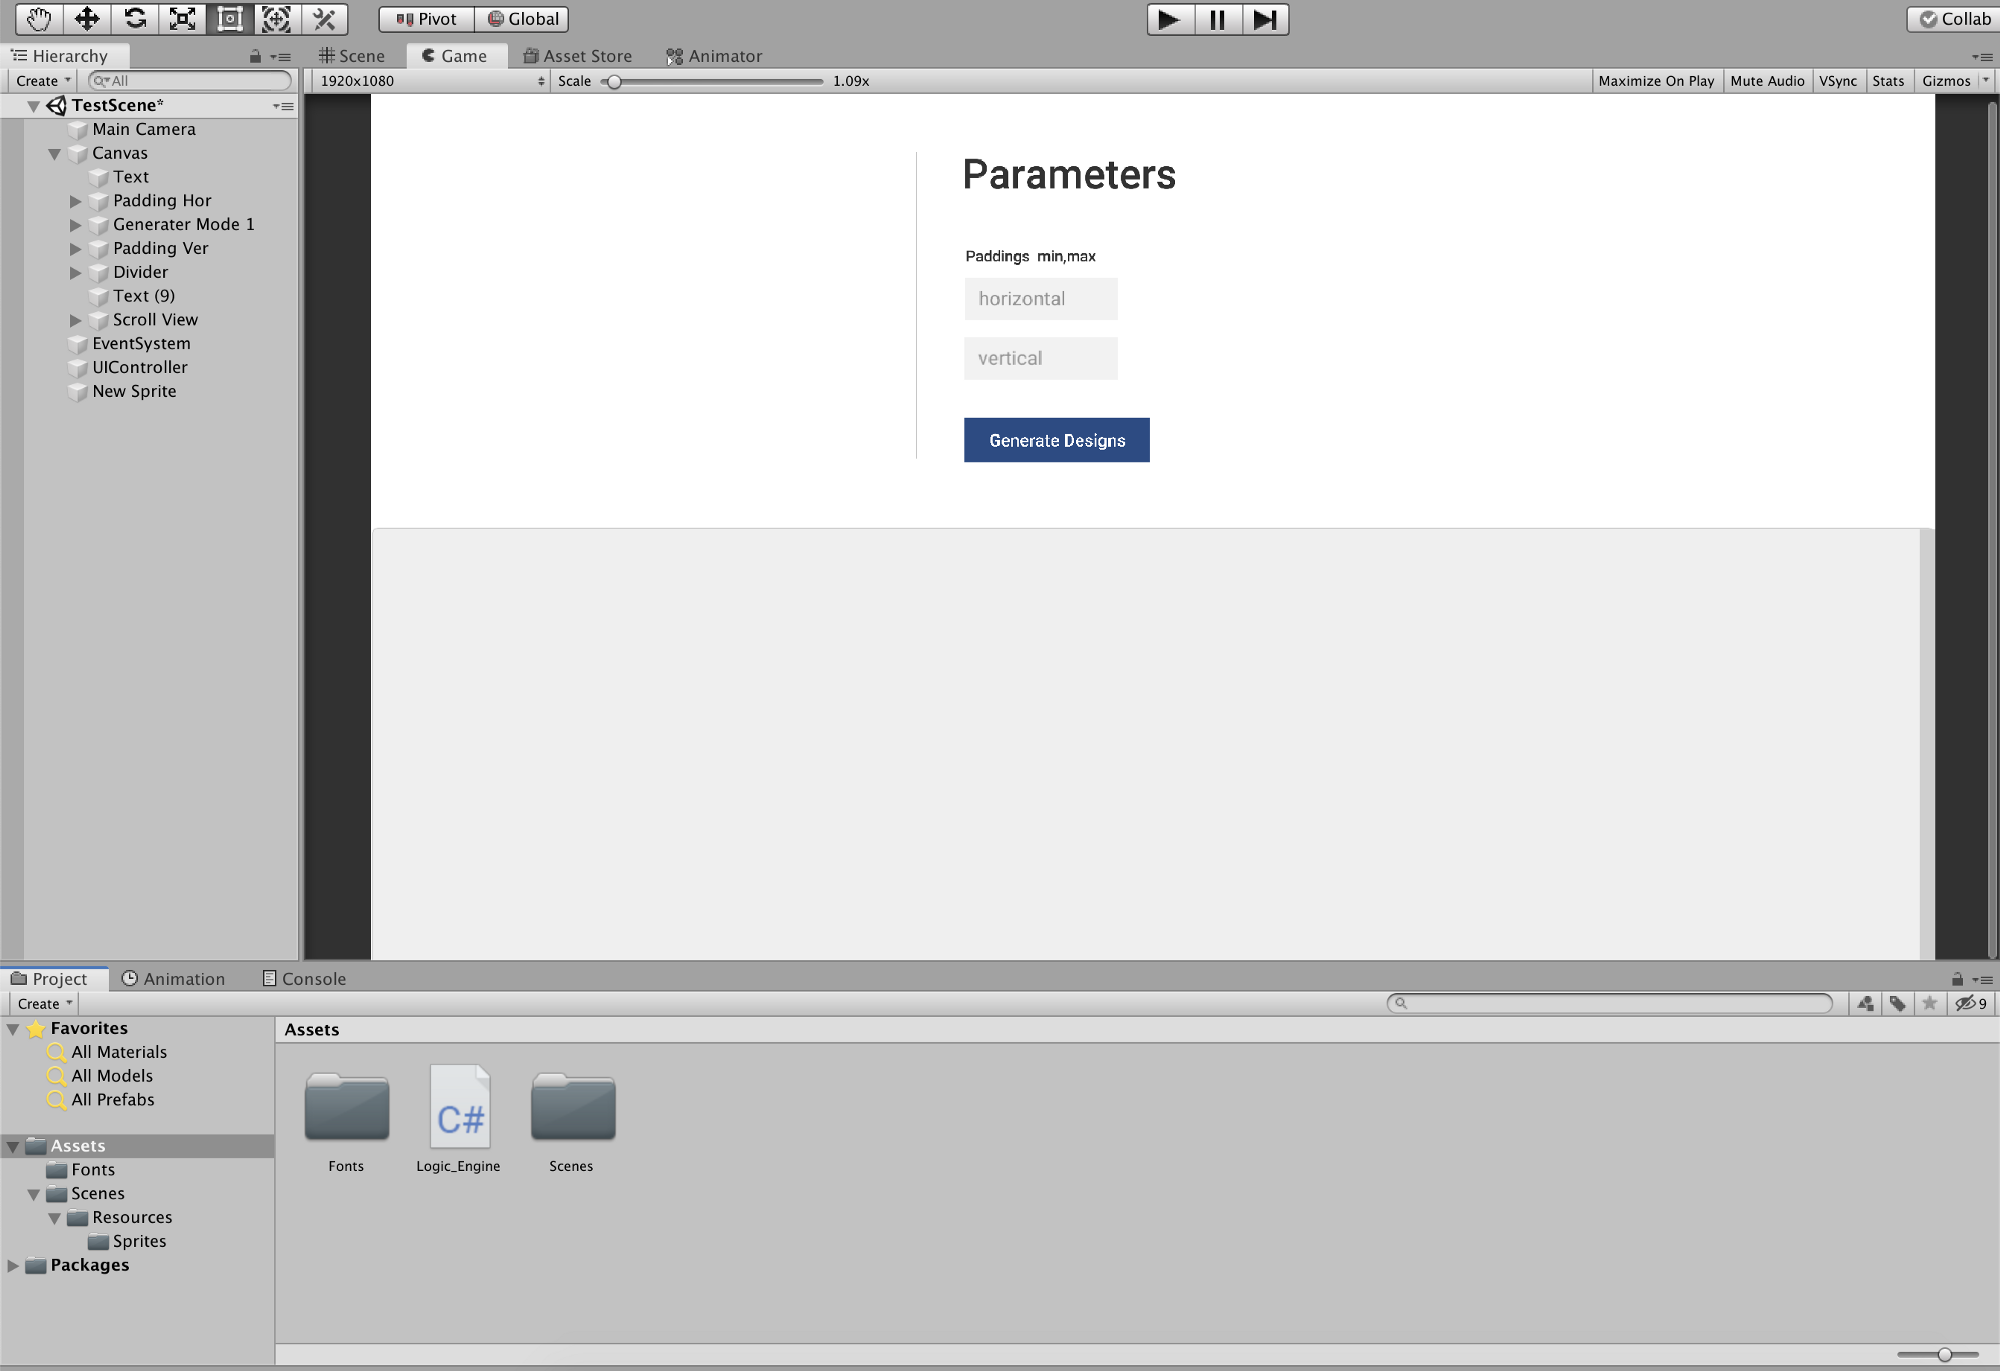 Screenshot of Unity3D, a game engine software that I used to create the first logic. It has 2 fields, title and a button